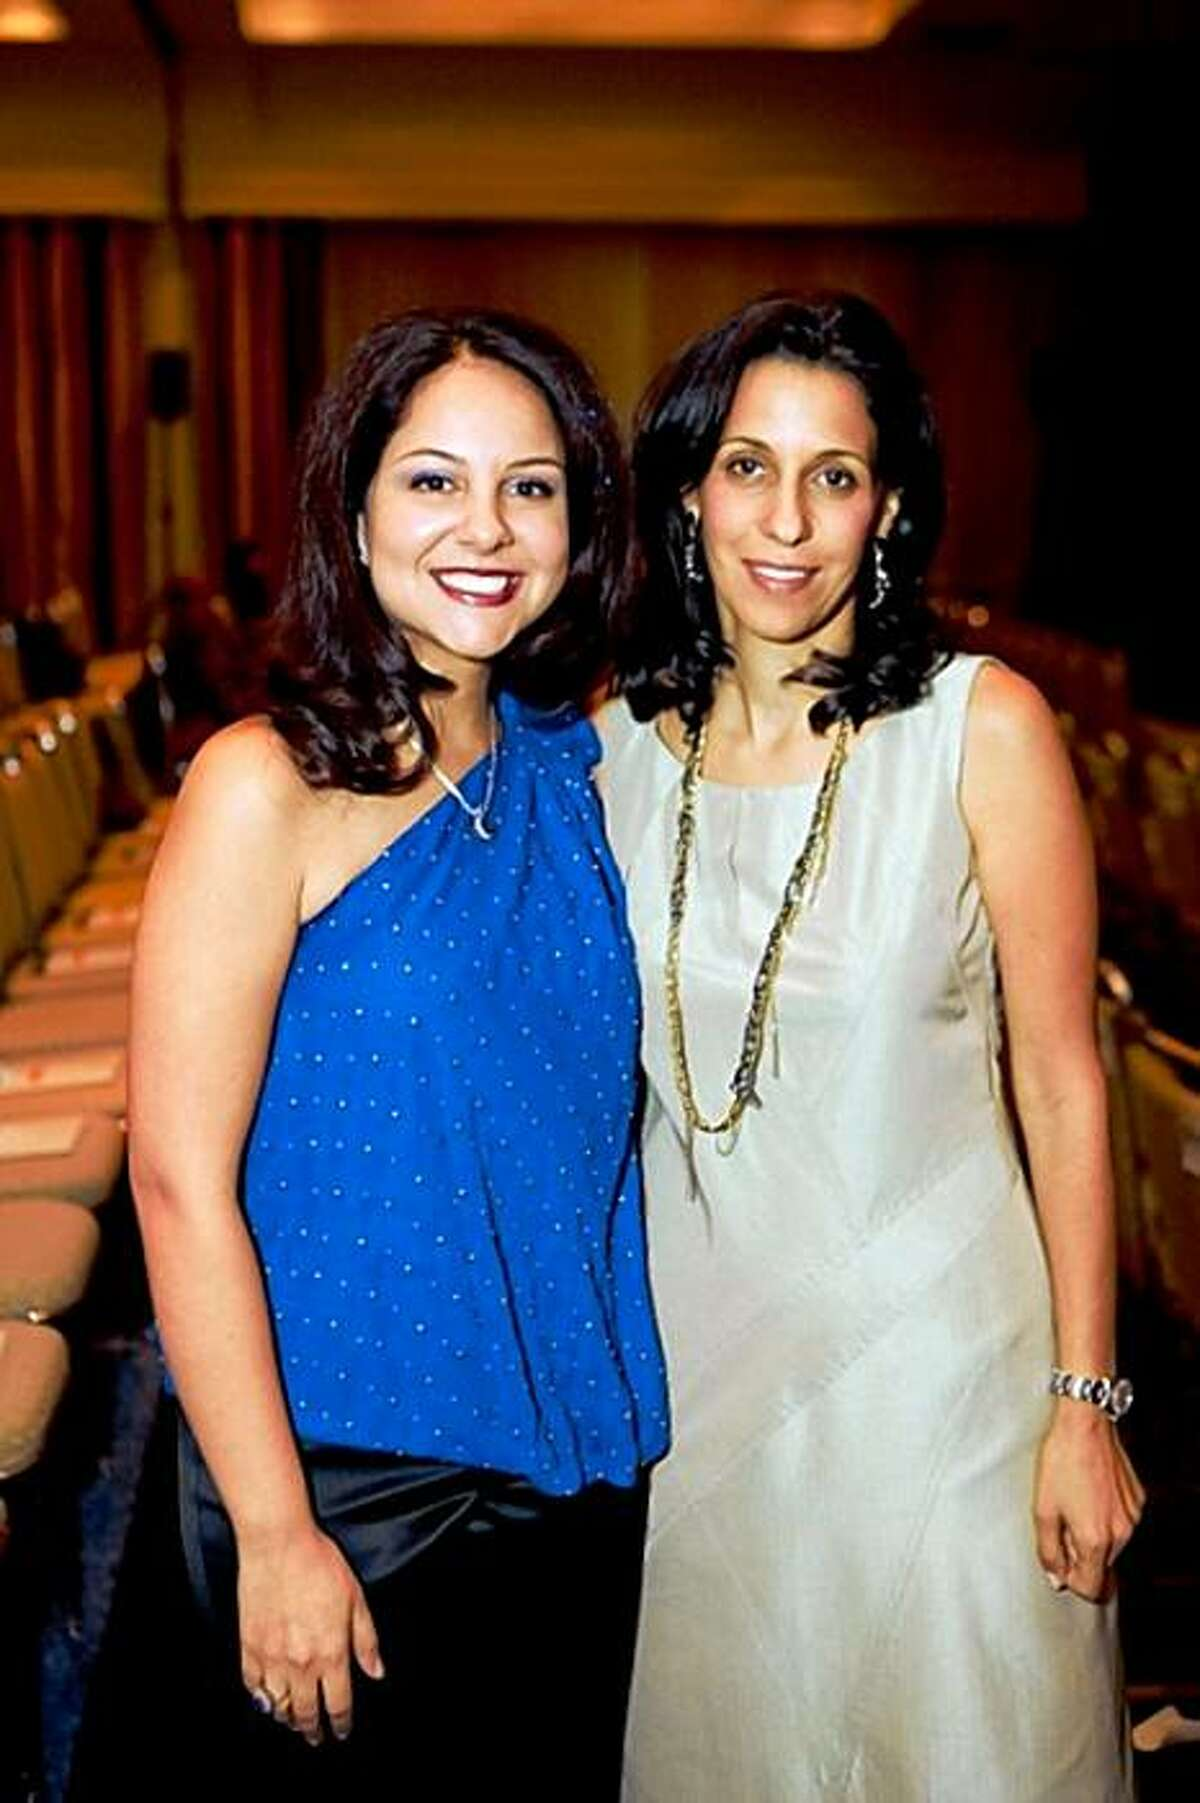 cq'd: Event co-chairs Lily Sarafan and Laili Javid at Parsa Community Foundation's Light the Way awards celebration on Oct. 18 at Sofitel San Francisco Bay in Redwood City. Lily Sarafan, Laili Javid